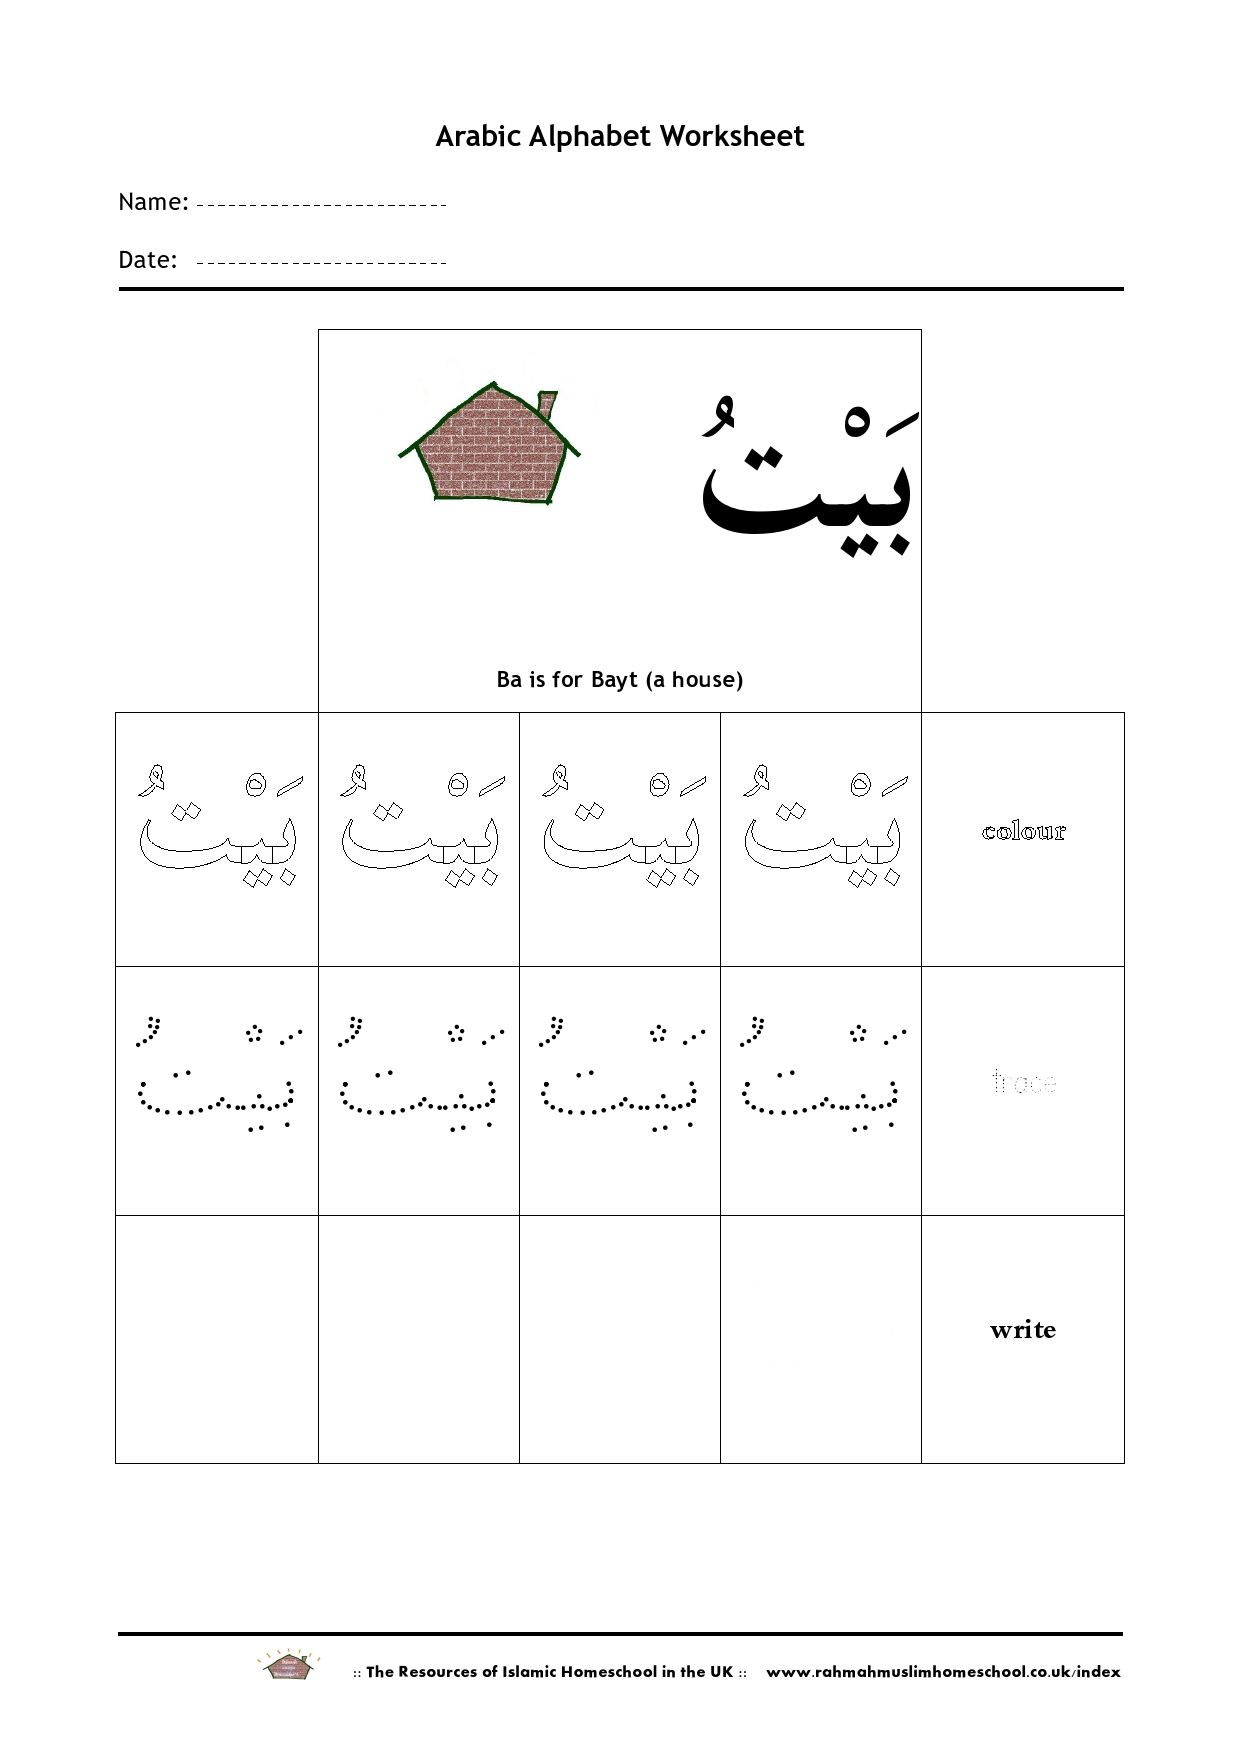 Free Arabic Alphabet Worksheet Ba is for Bayt a house – Arabic Alphabet Worksheets